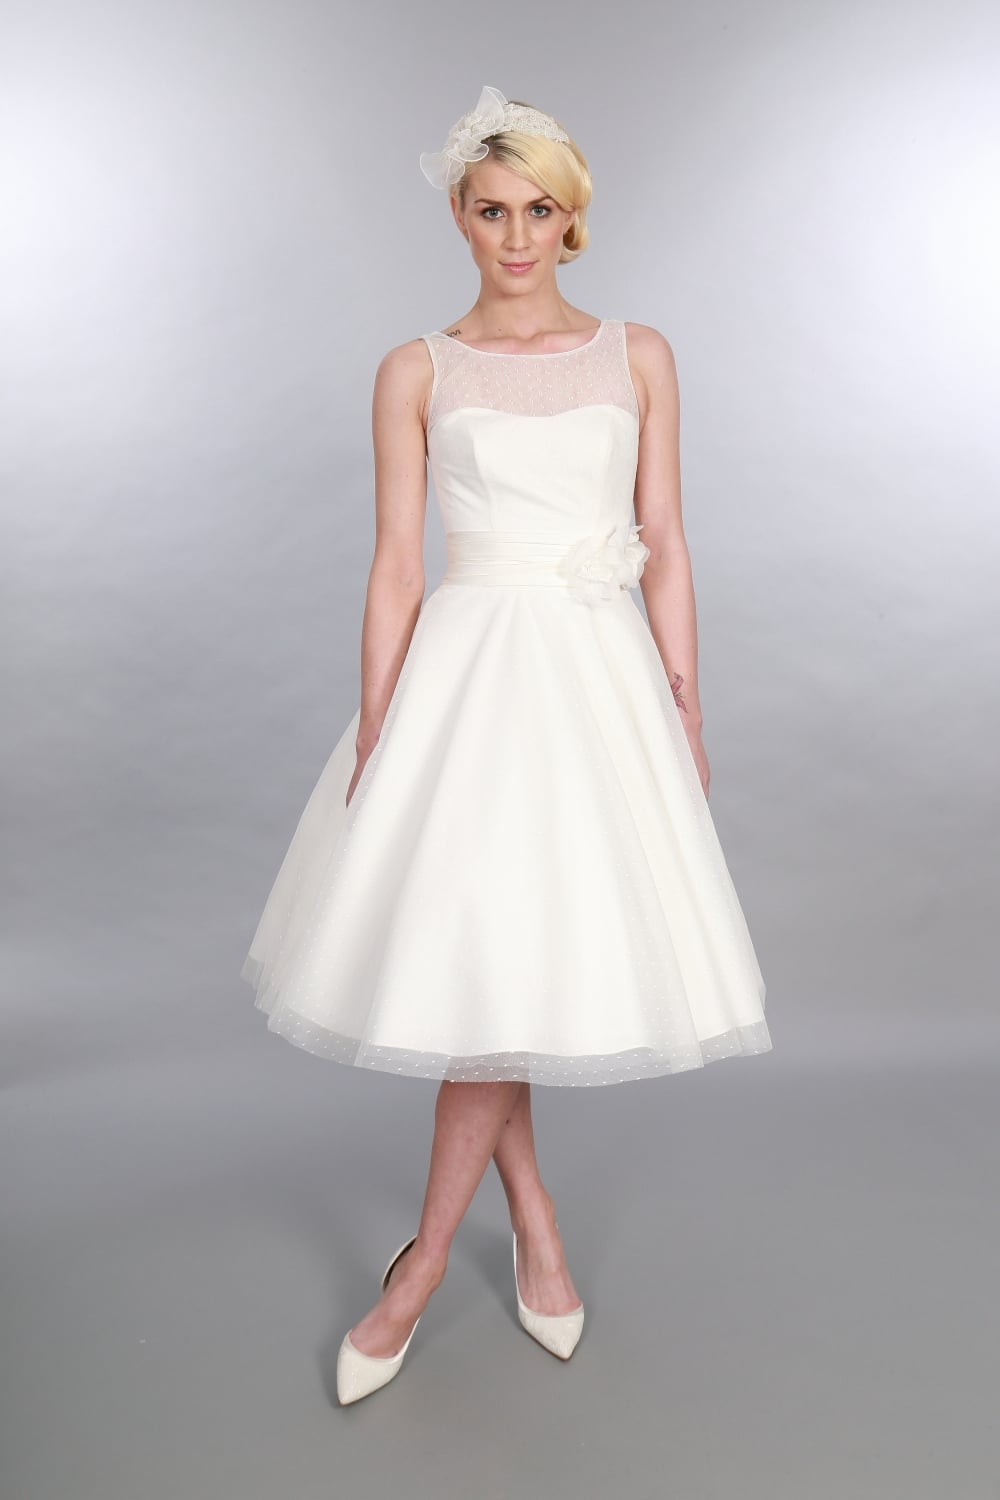 1950s Style Wedding Dresses | 50s & 60s Bridal Dresses UK